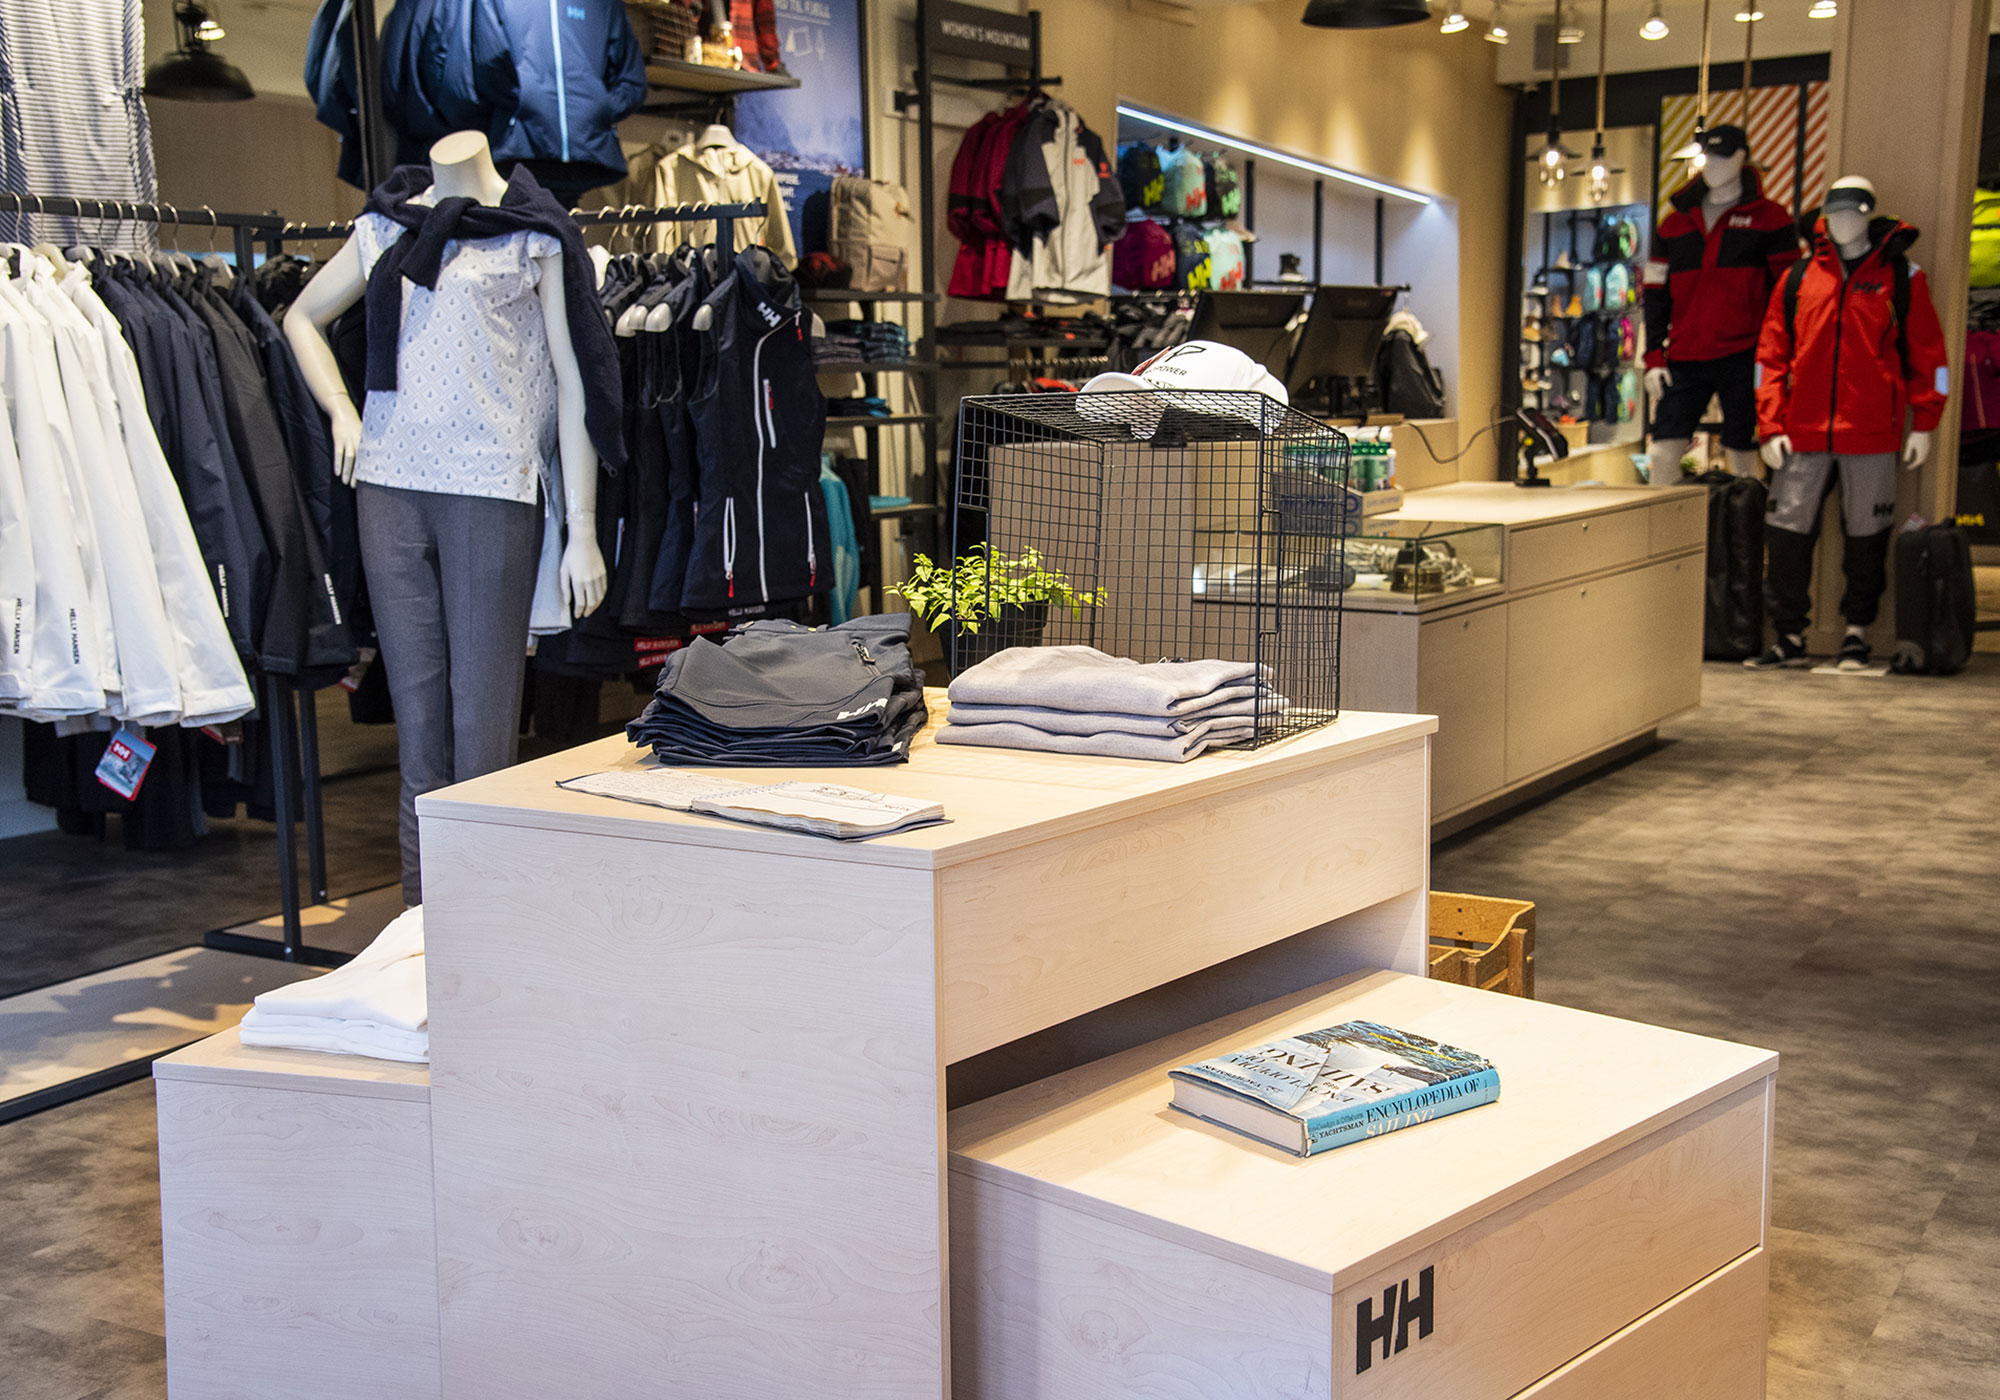 Display with a book on top with active wear in the background